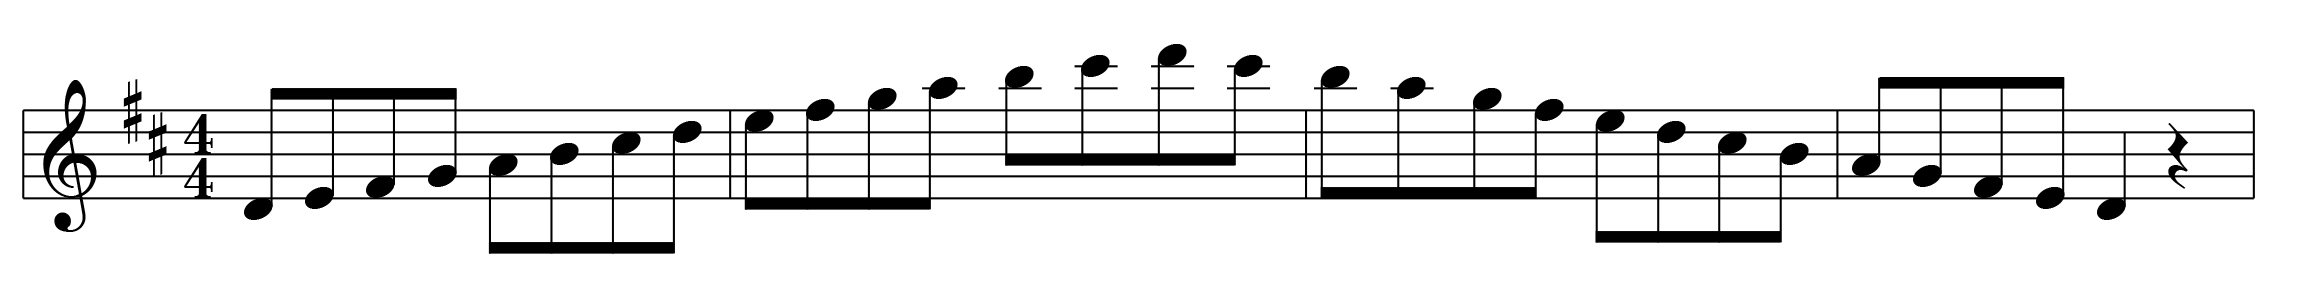 D Major Scale Right Hand